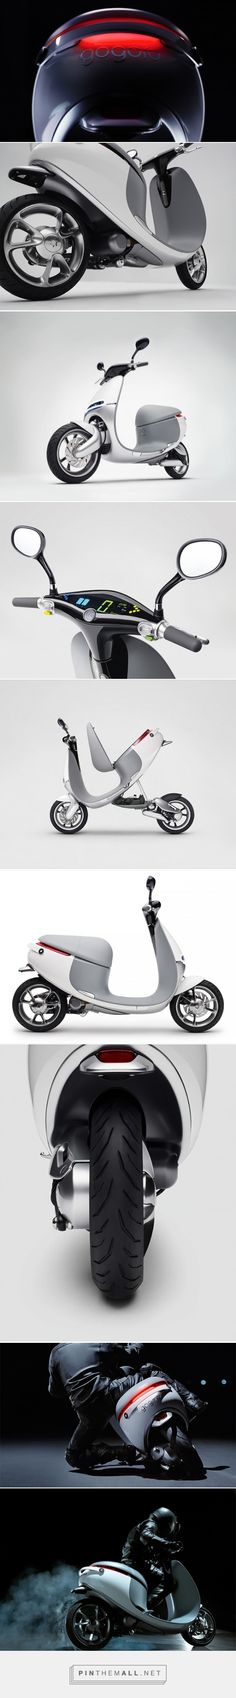 Gogoro Electric Smartscooter – Fubiz Media - created via http://pinthemall.net